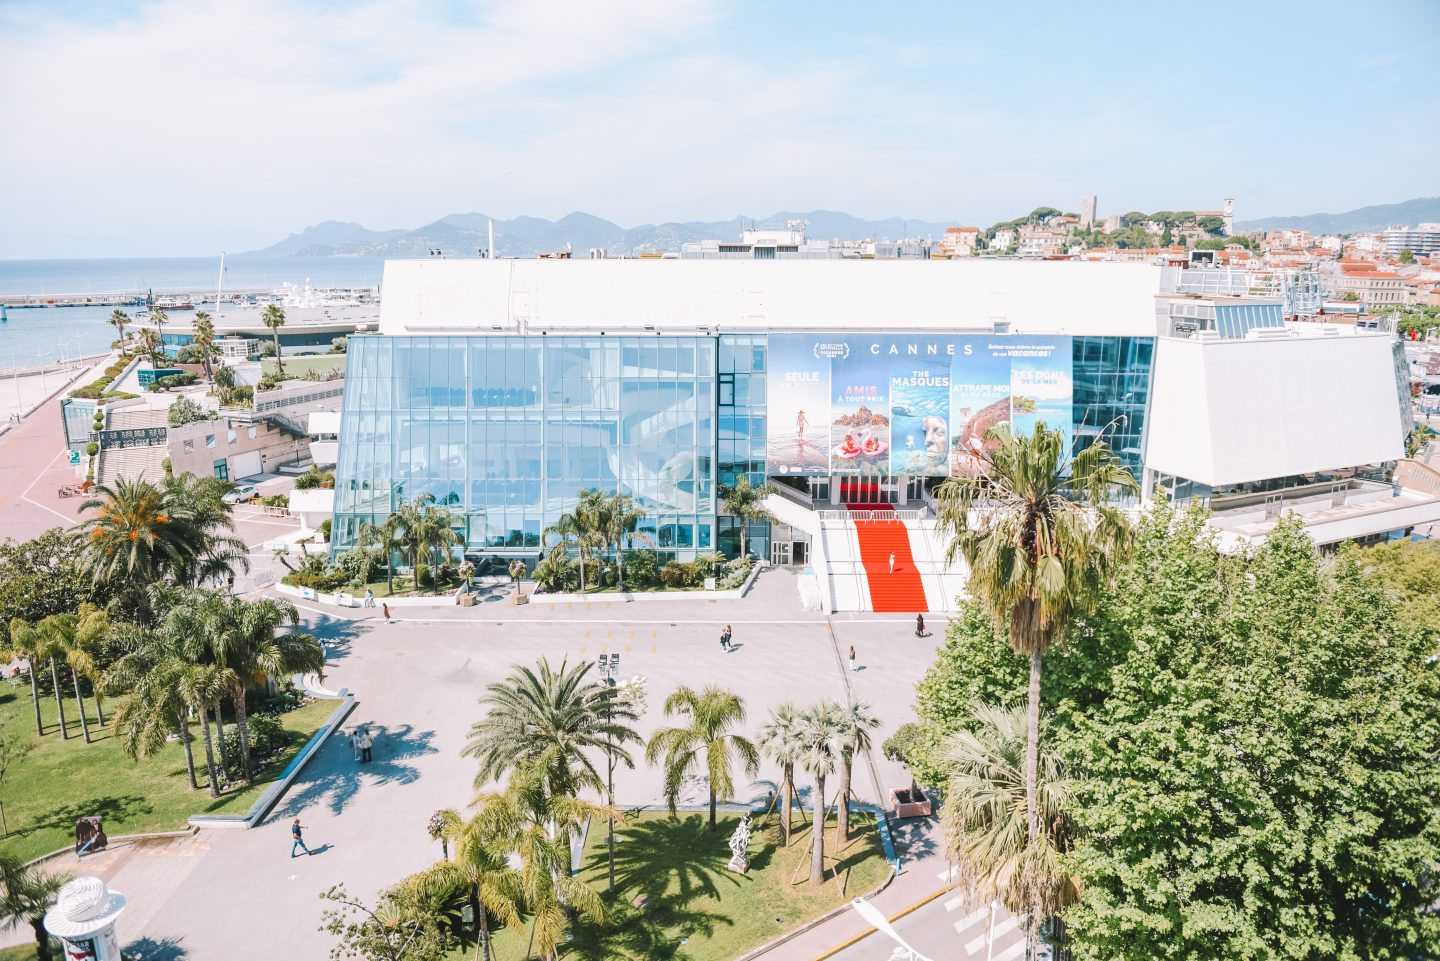 Cannes Film Festival red carpet view from hotel Barriere Majestic